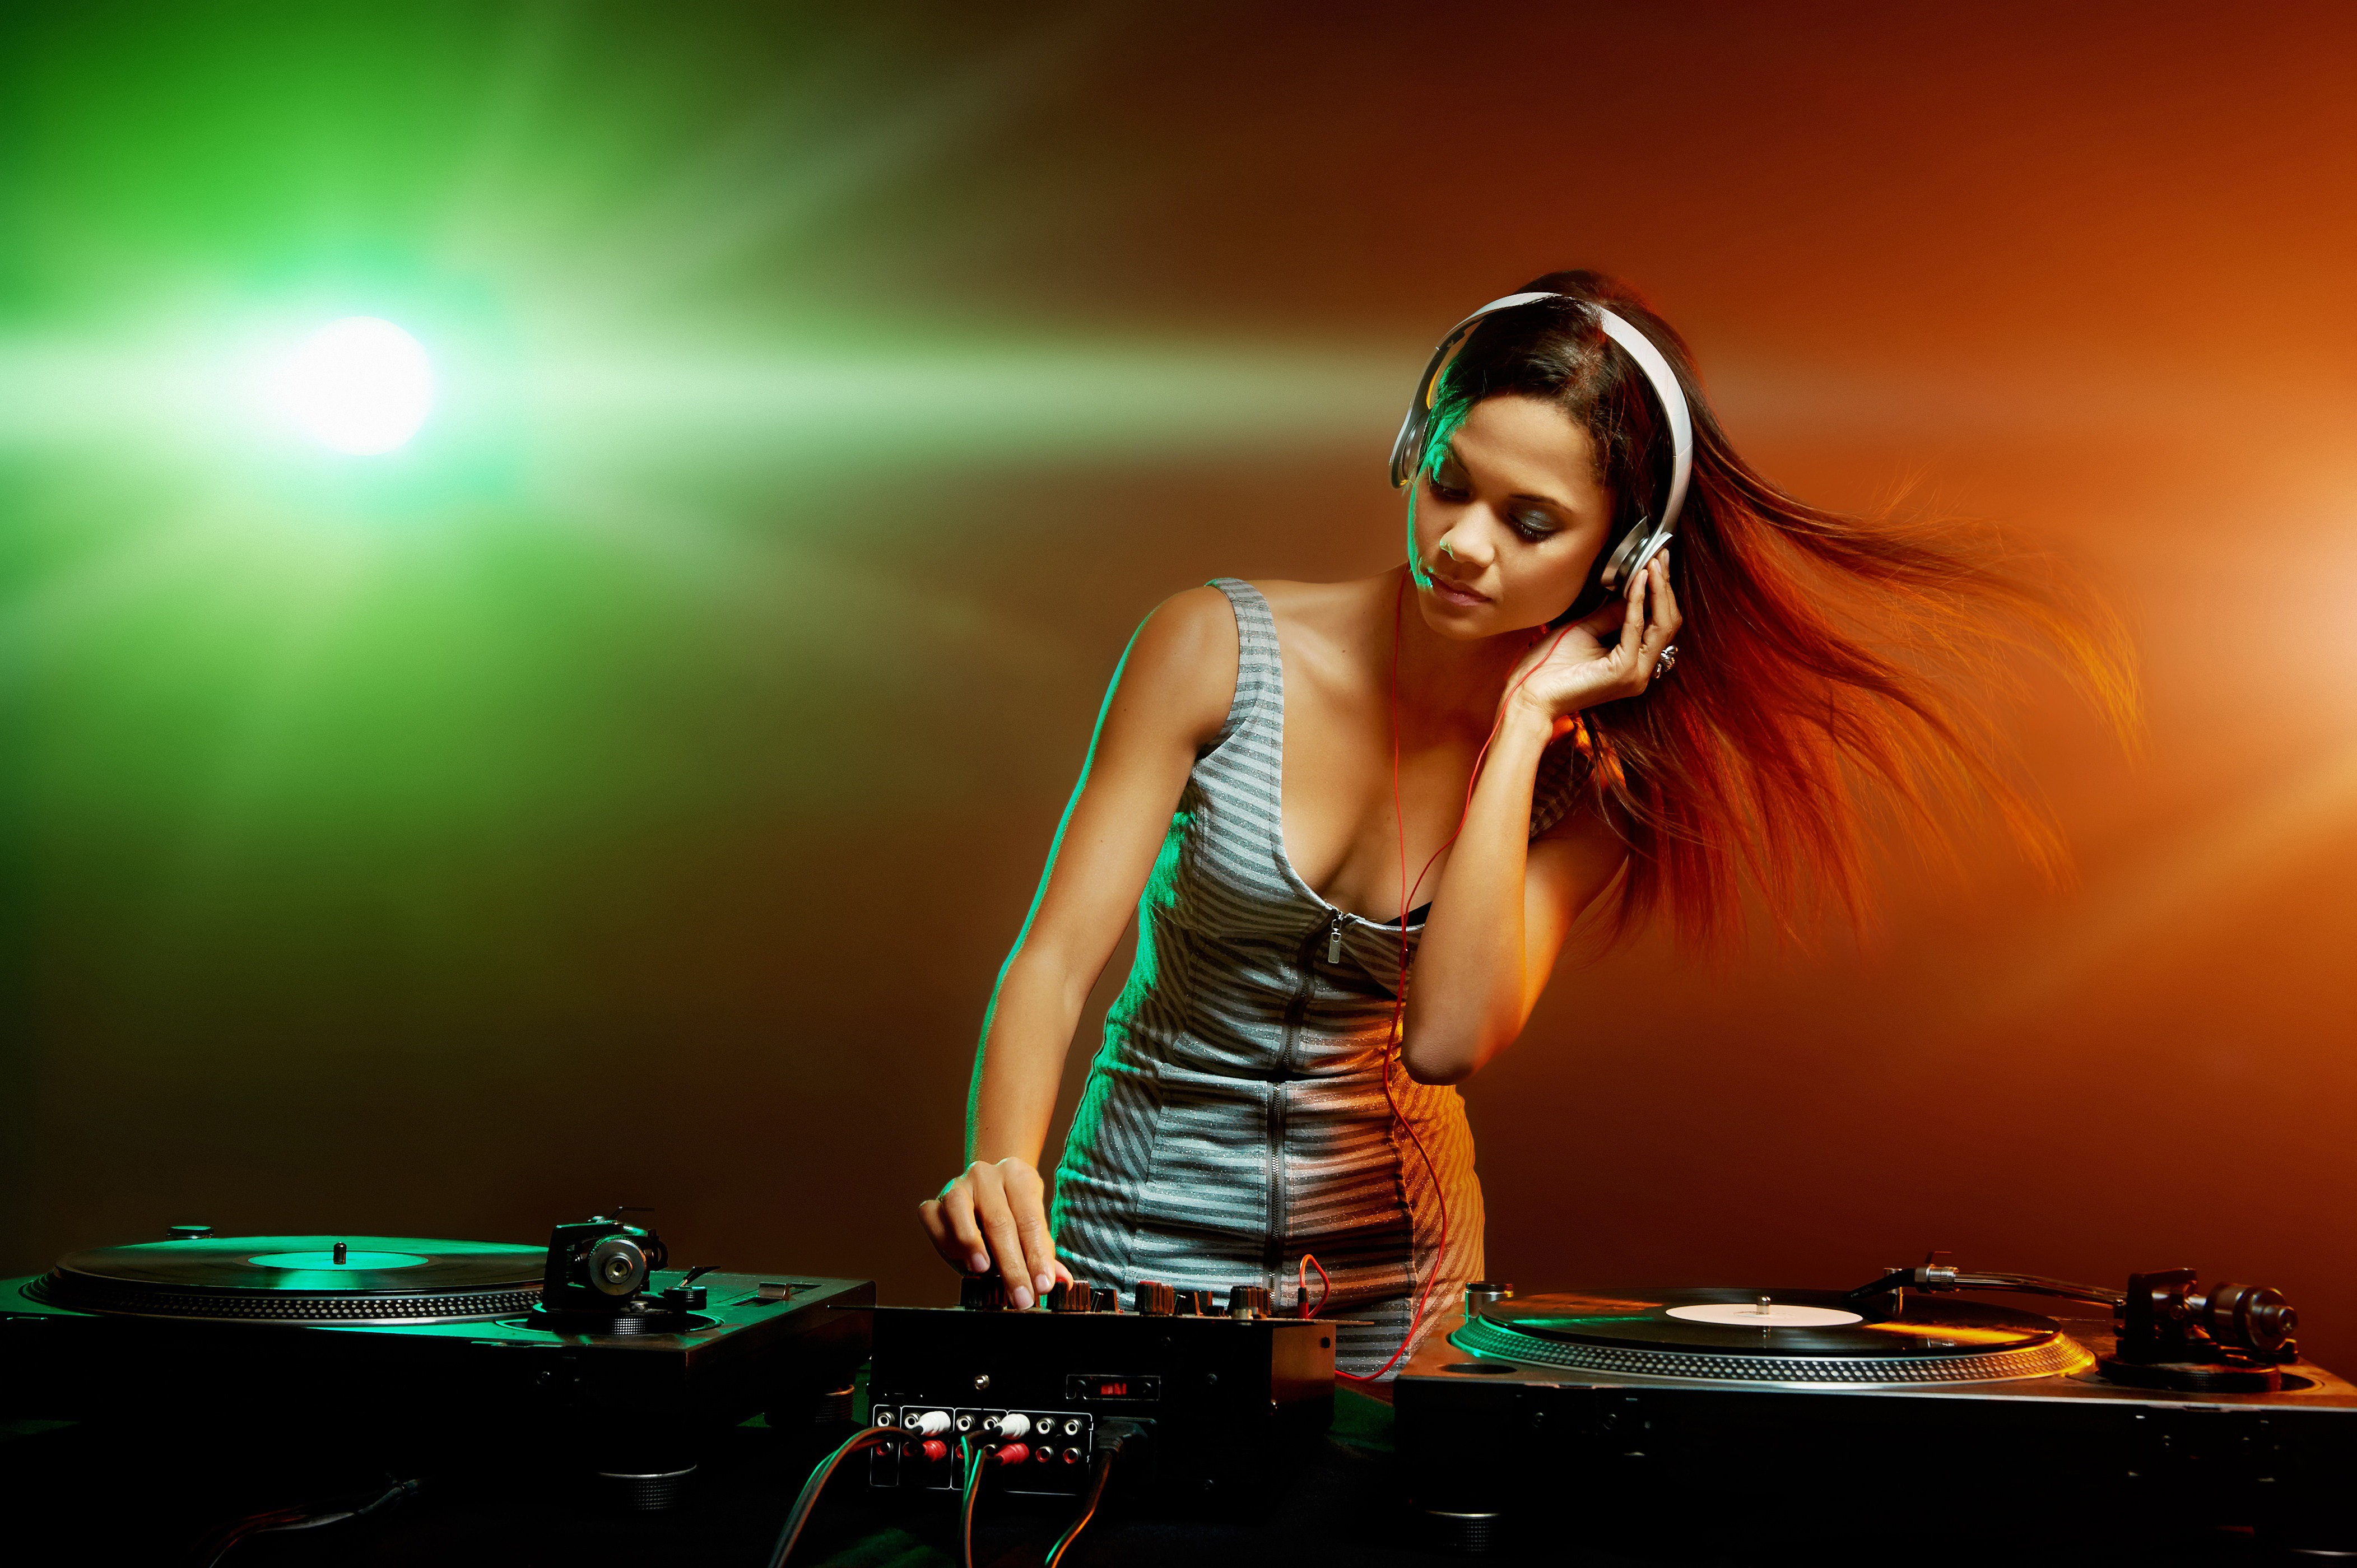 DJ Party Music Girl Wallpapers   New HD Wallpapers 4207x2799